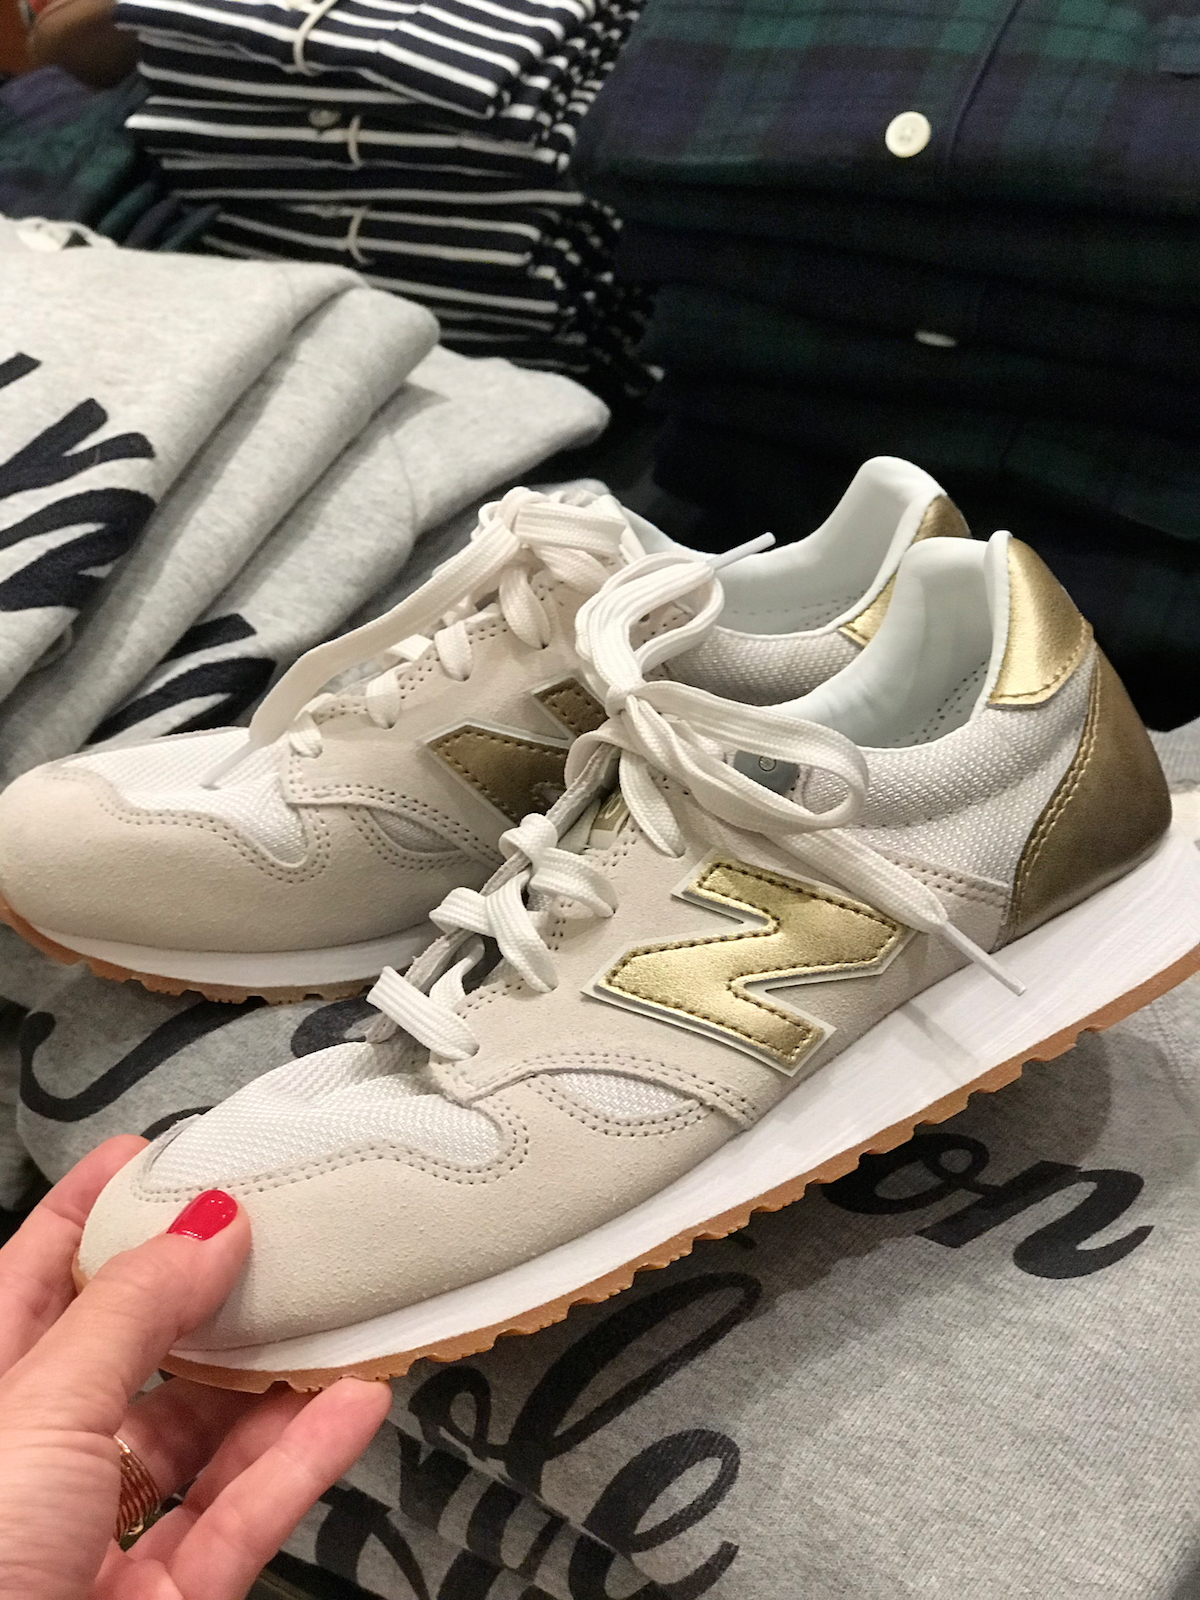 Black Friday Sales 2018 JCrew New Balance Gold Sneakers